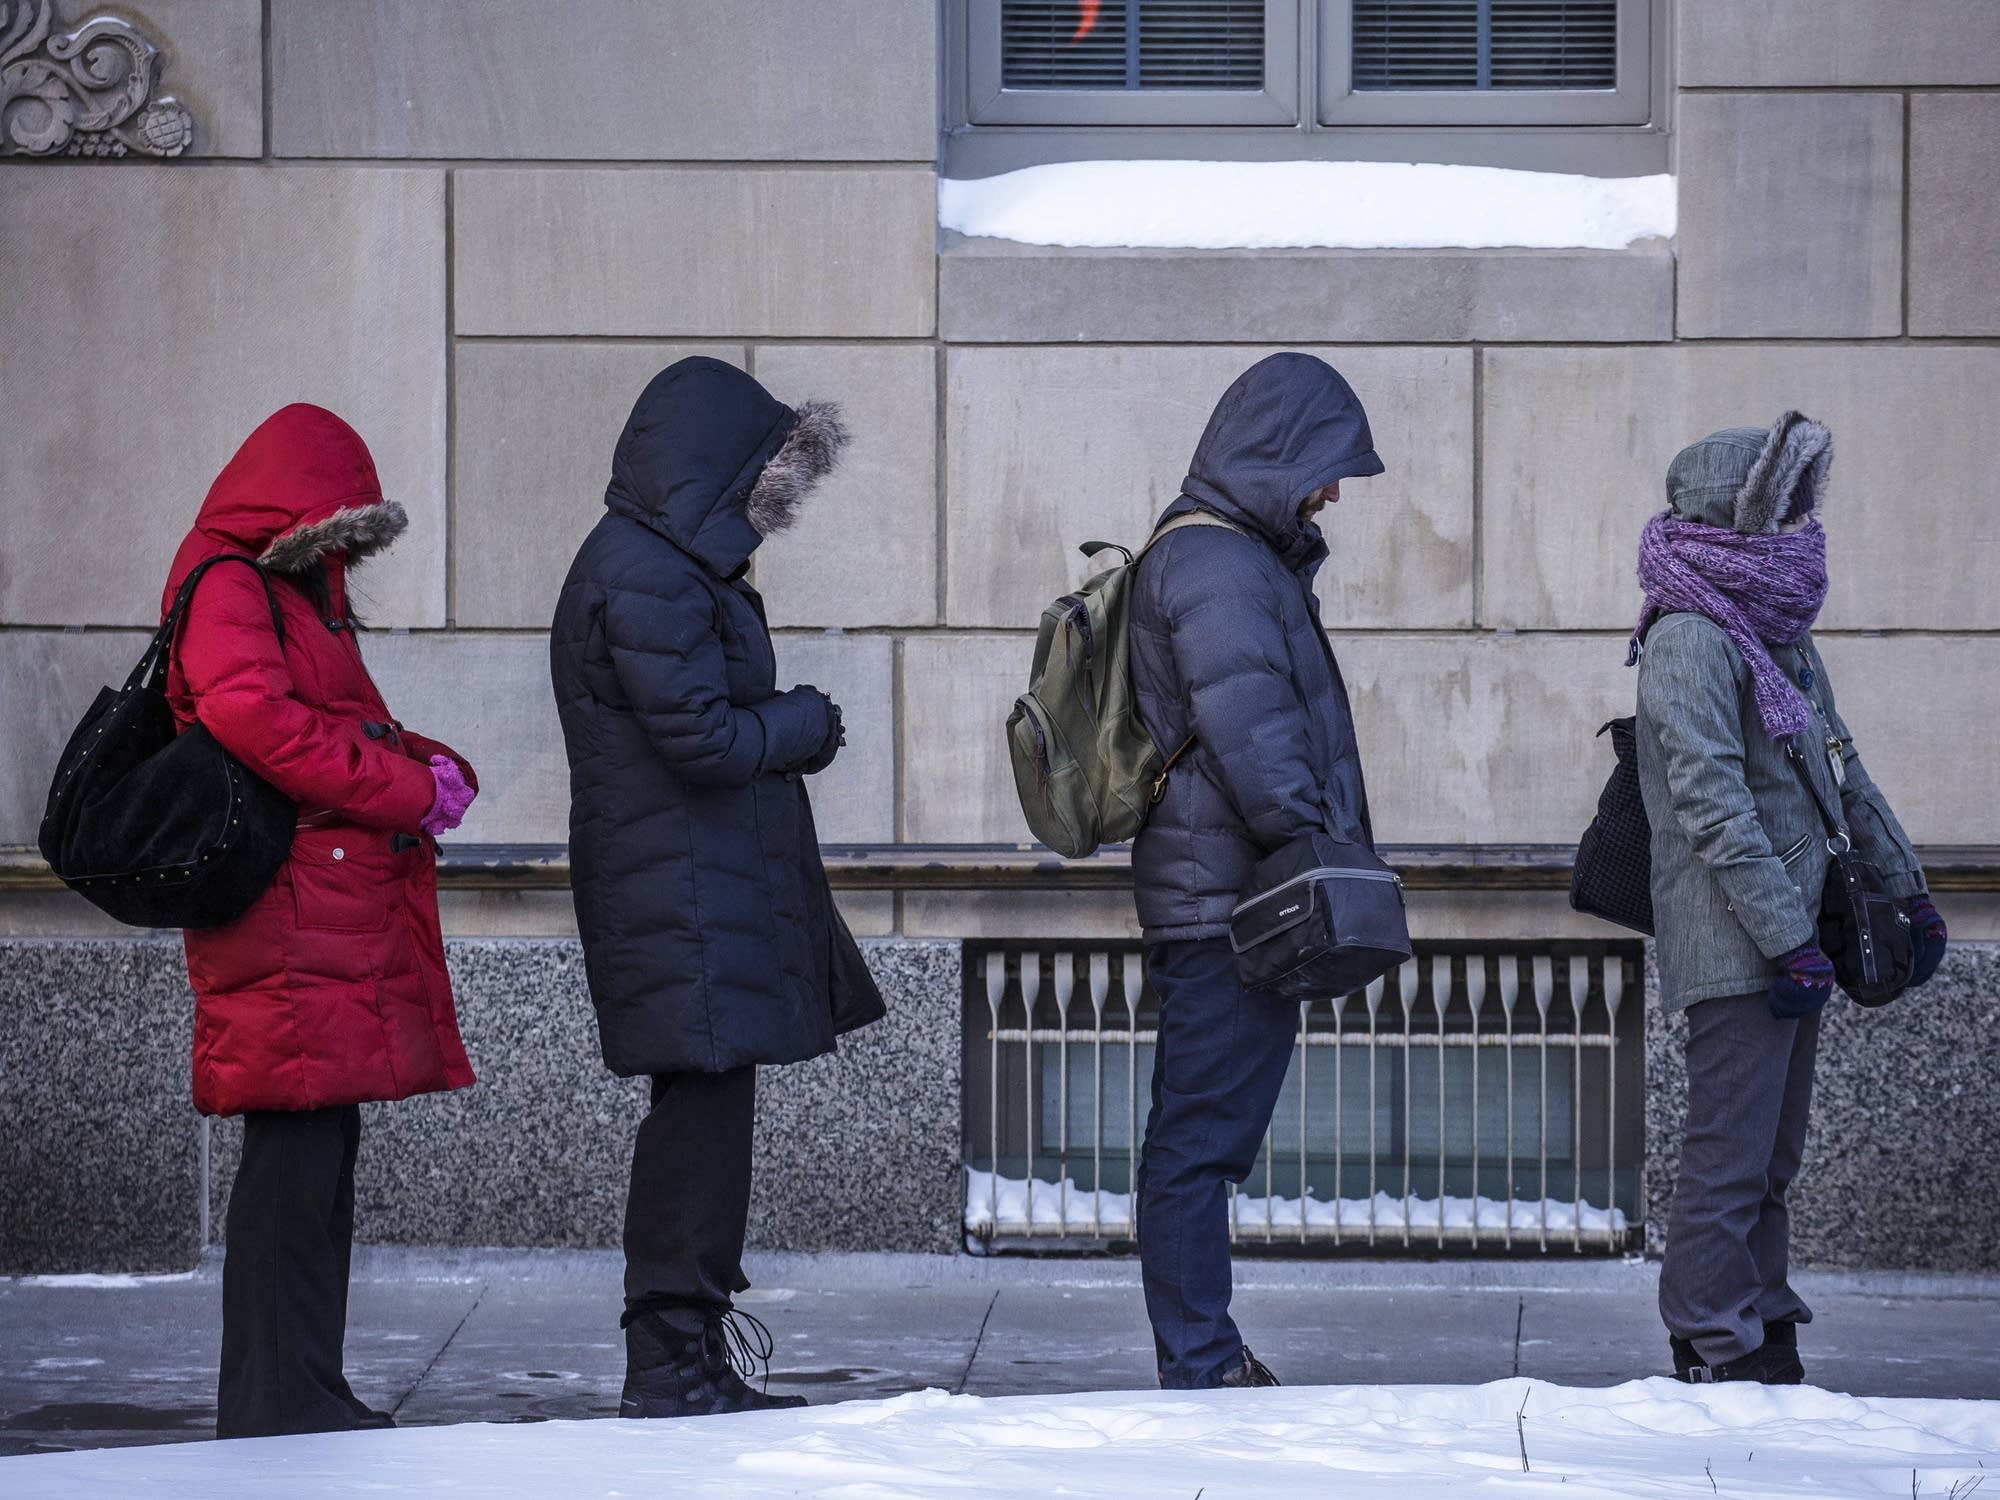 People bundled up in their hooded jackets wait for a a bus in Rochester.